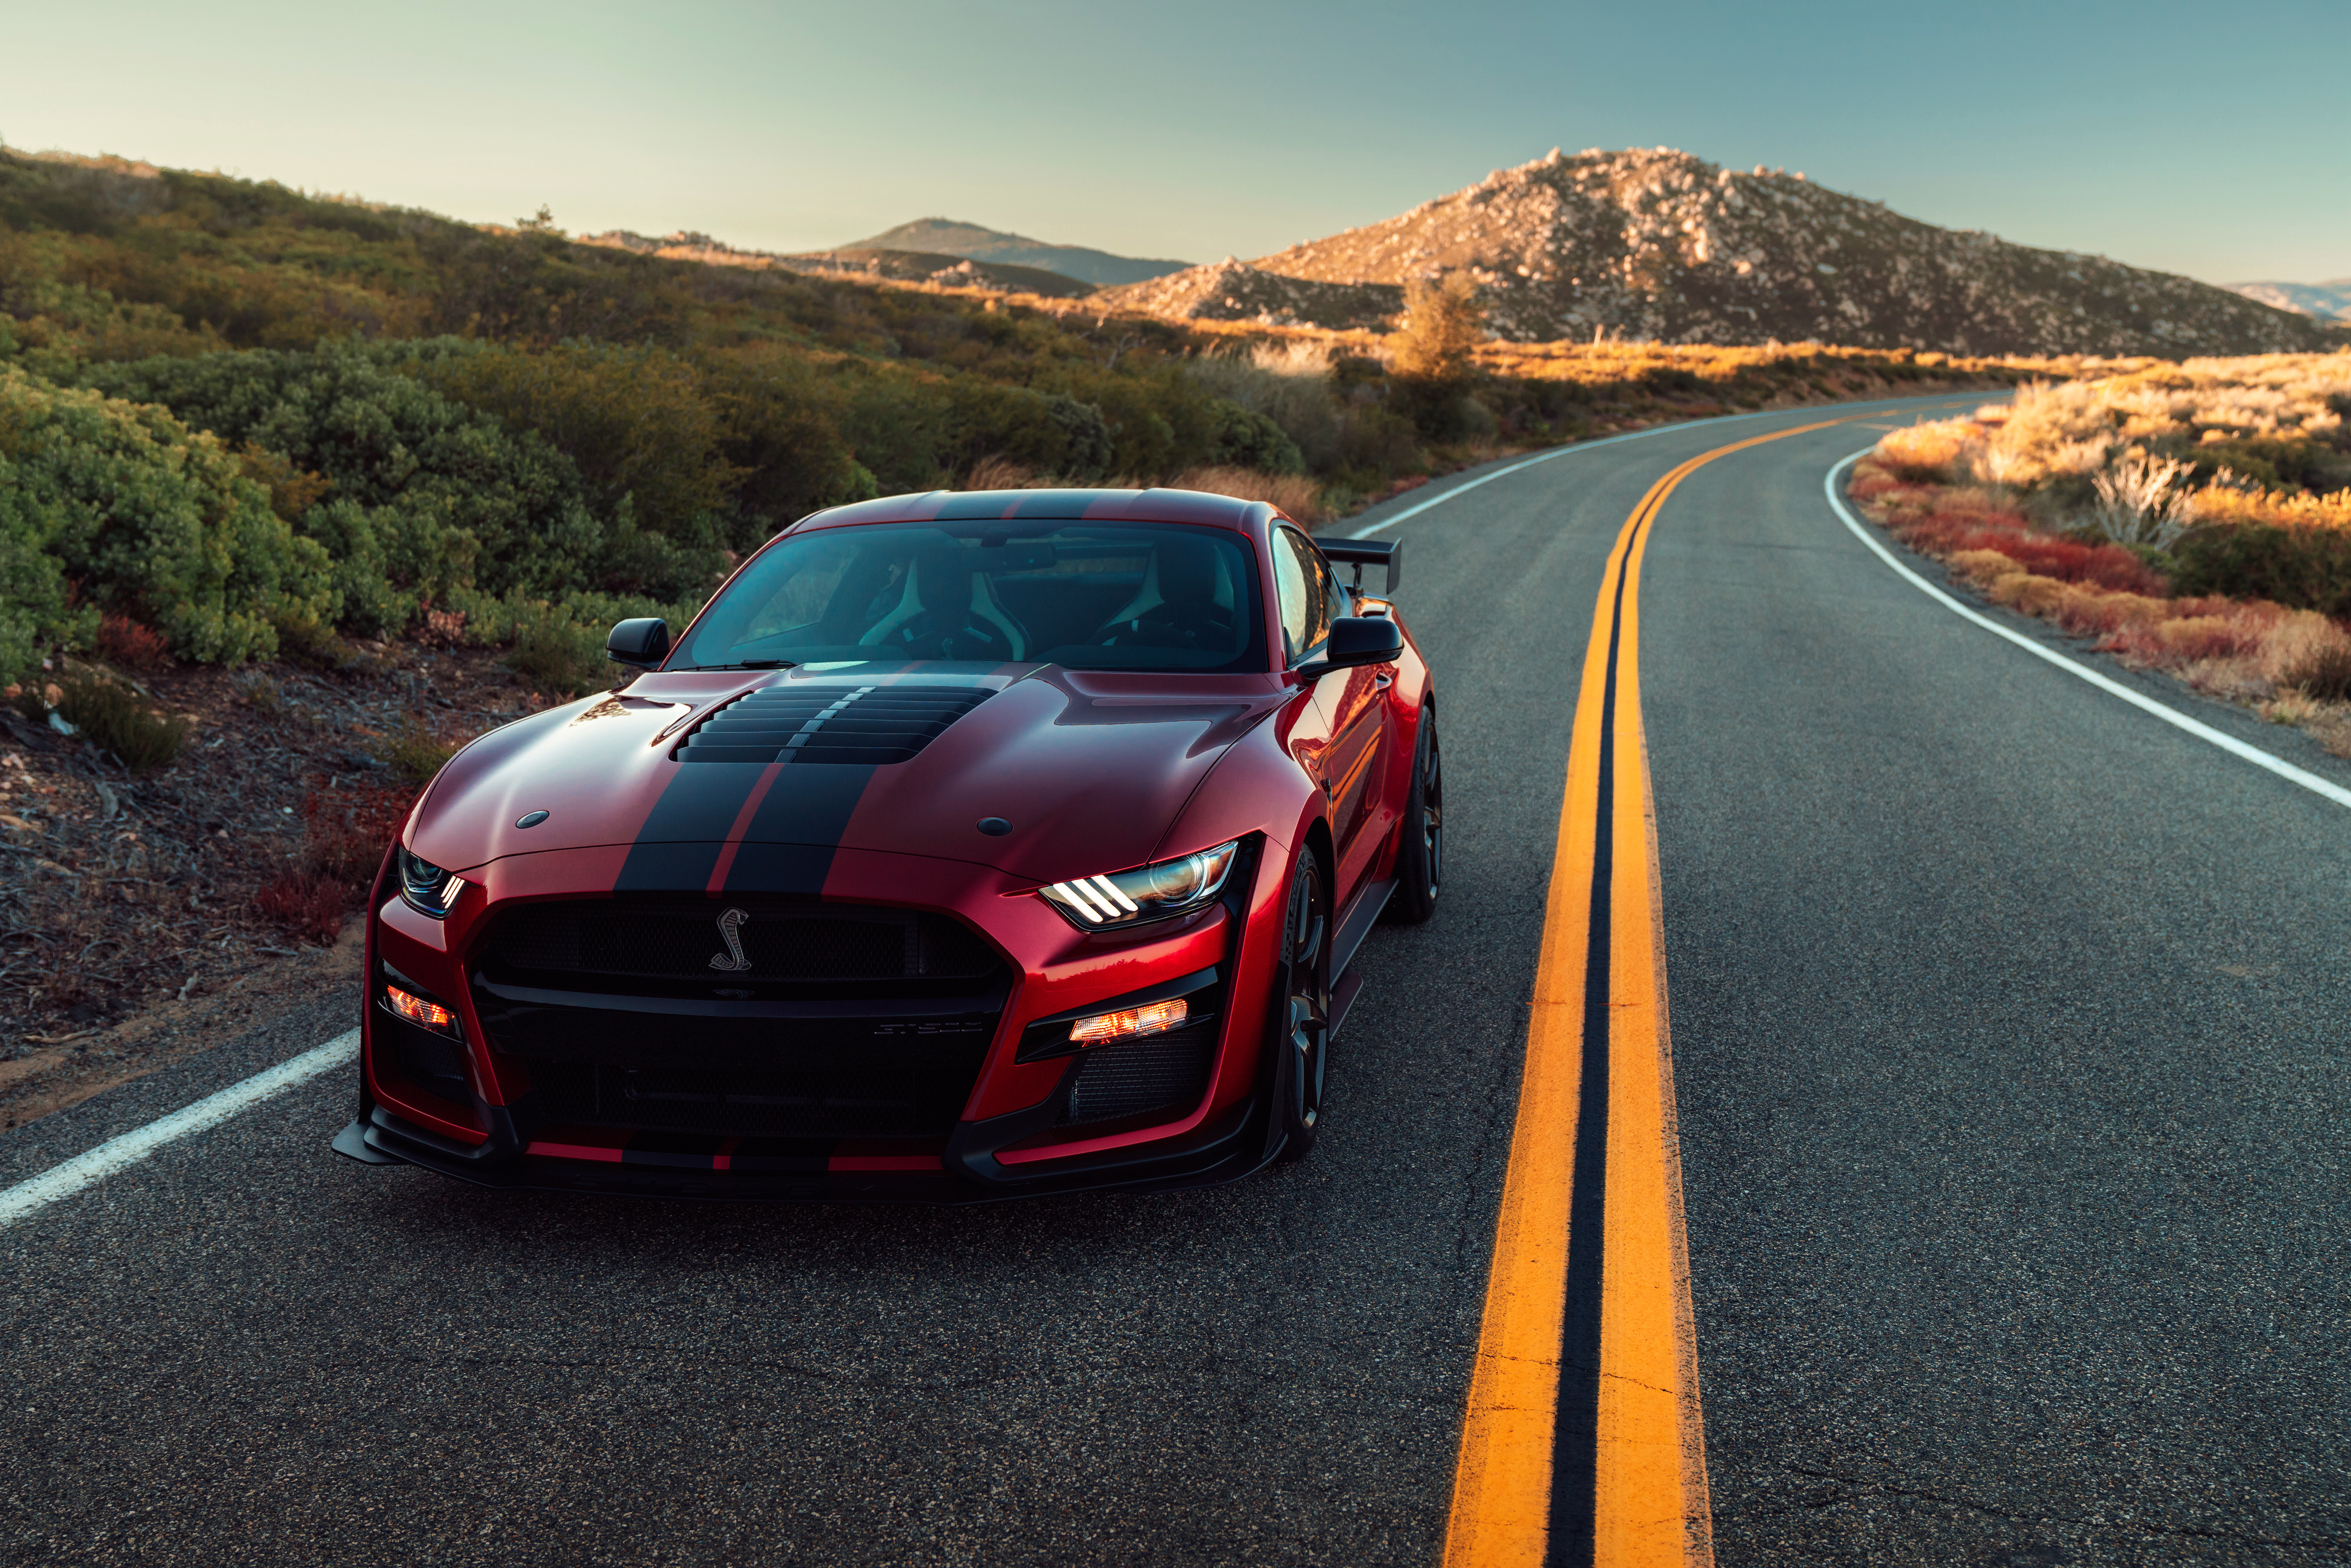 2020 Ford Mustang Shelby Gt500 4k Hd Cars 4k Wallpapers Images